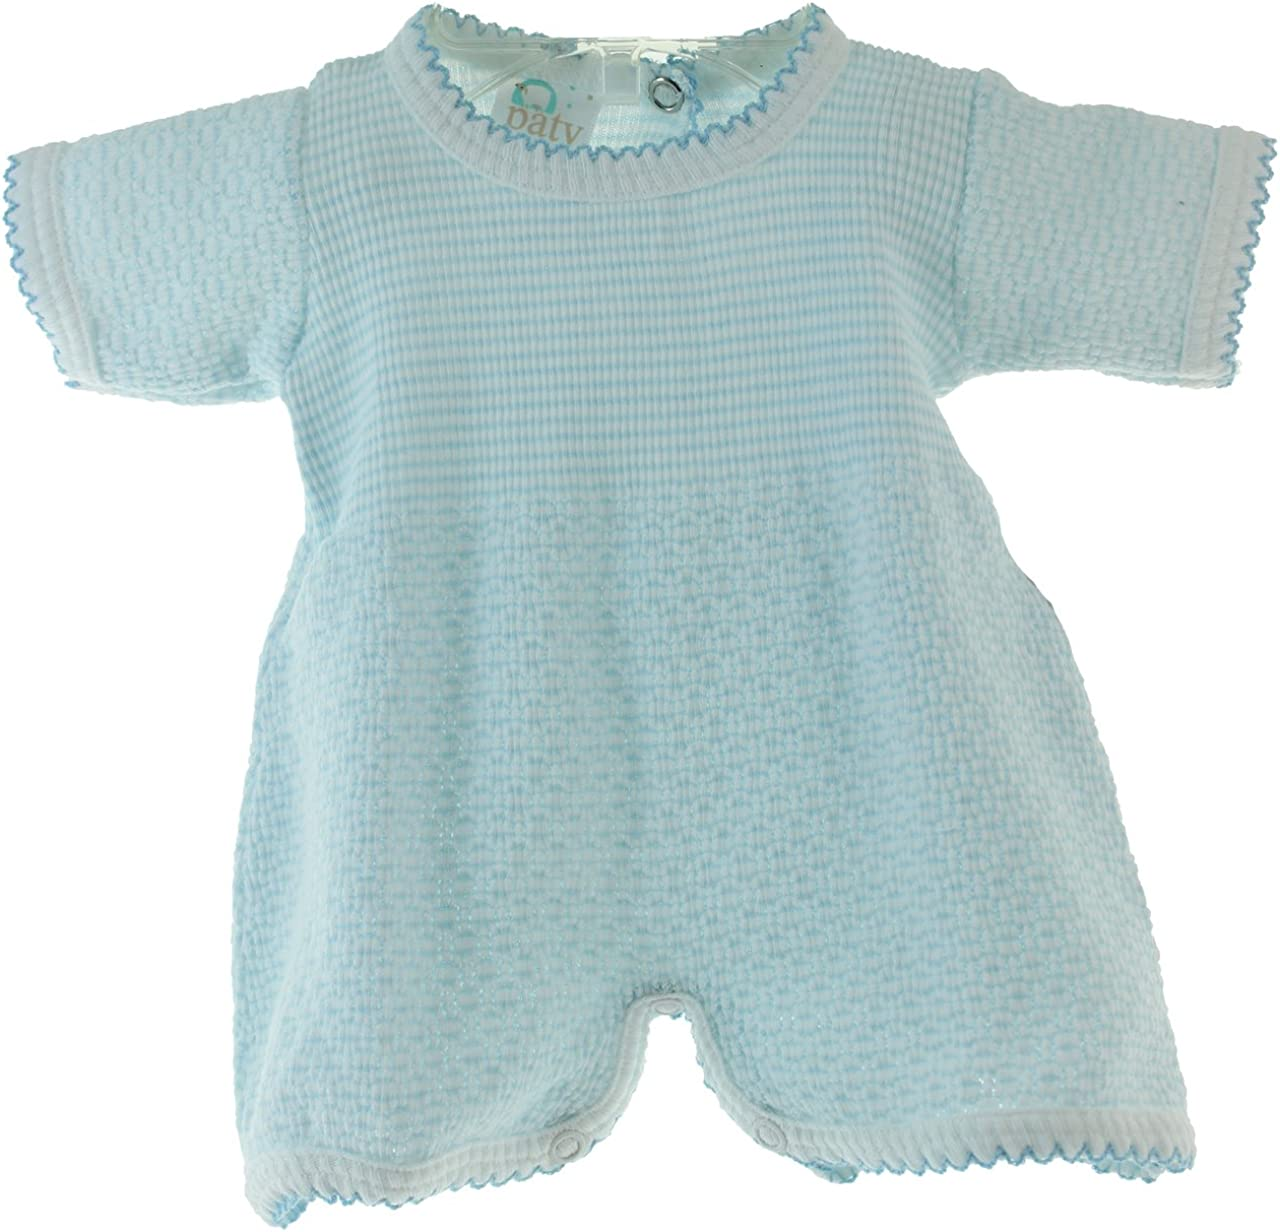 Paty Inc Boys Cotton Knit Blue Take Home Outfit Baby Clothes